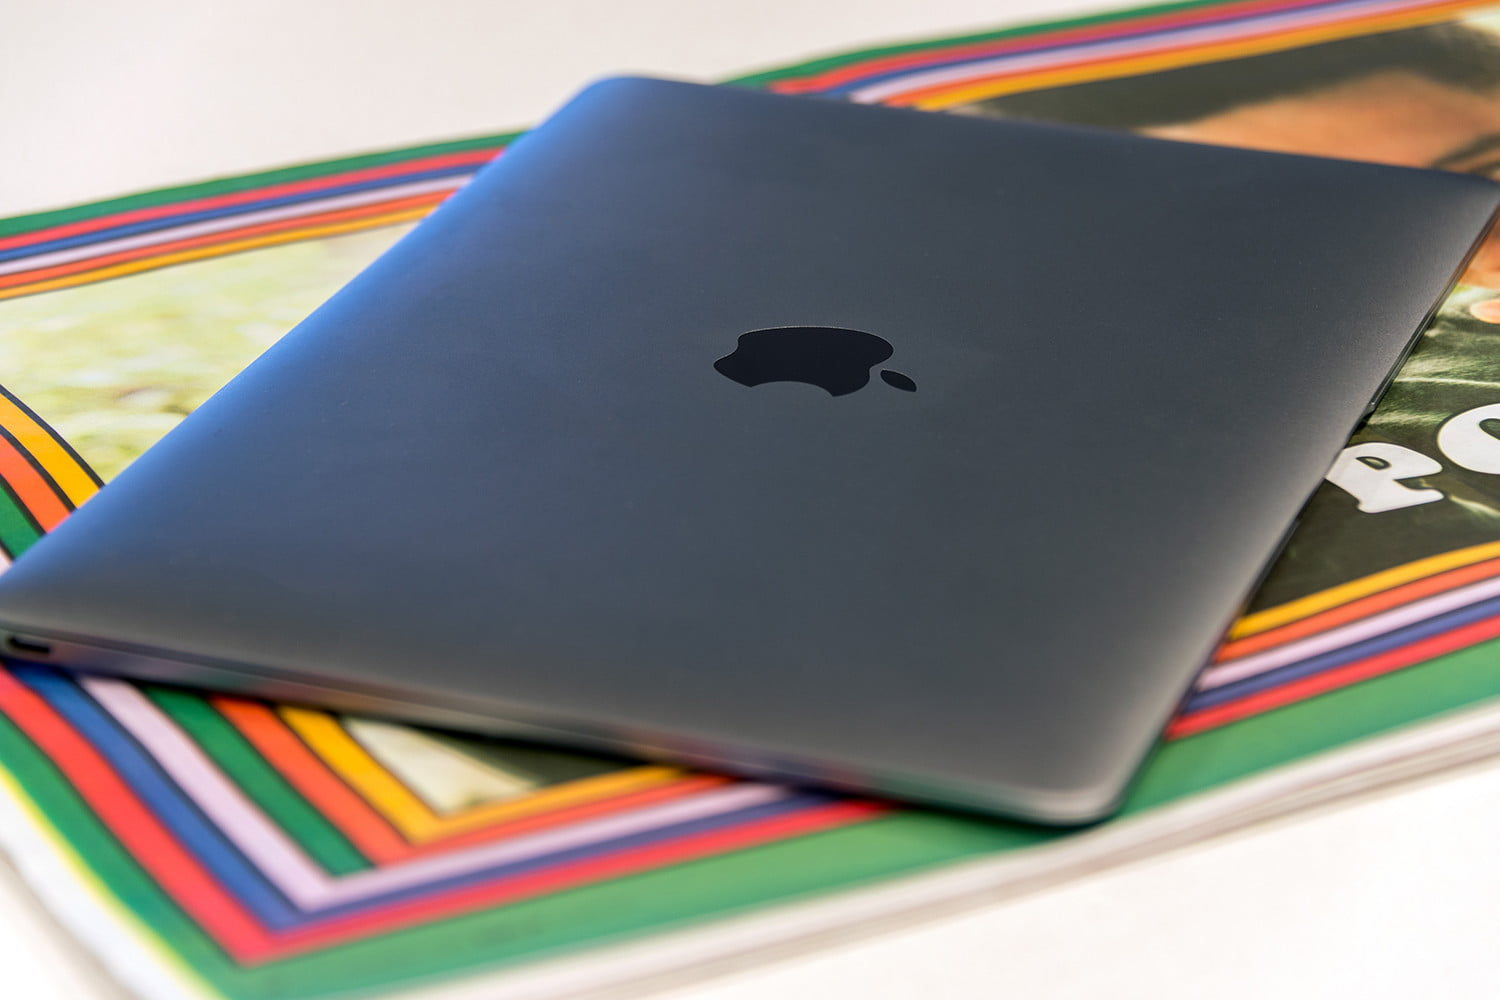 Apple MacBook-review-thincolors